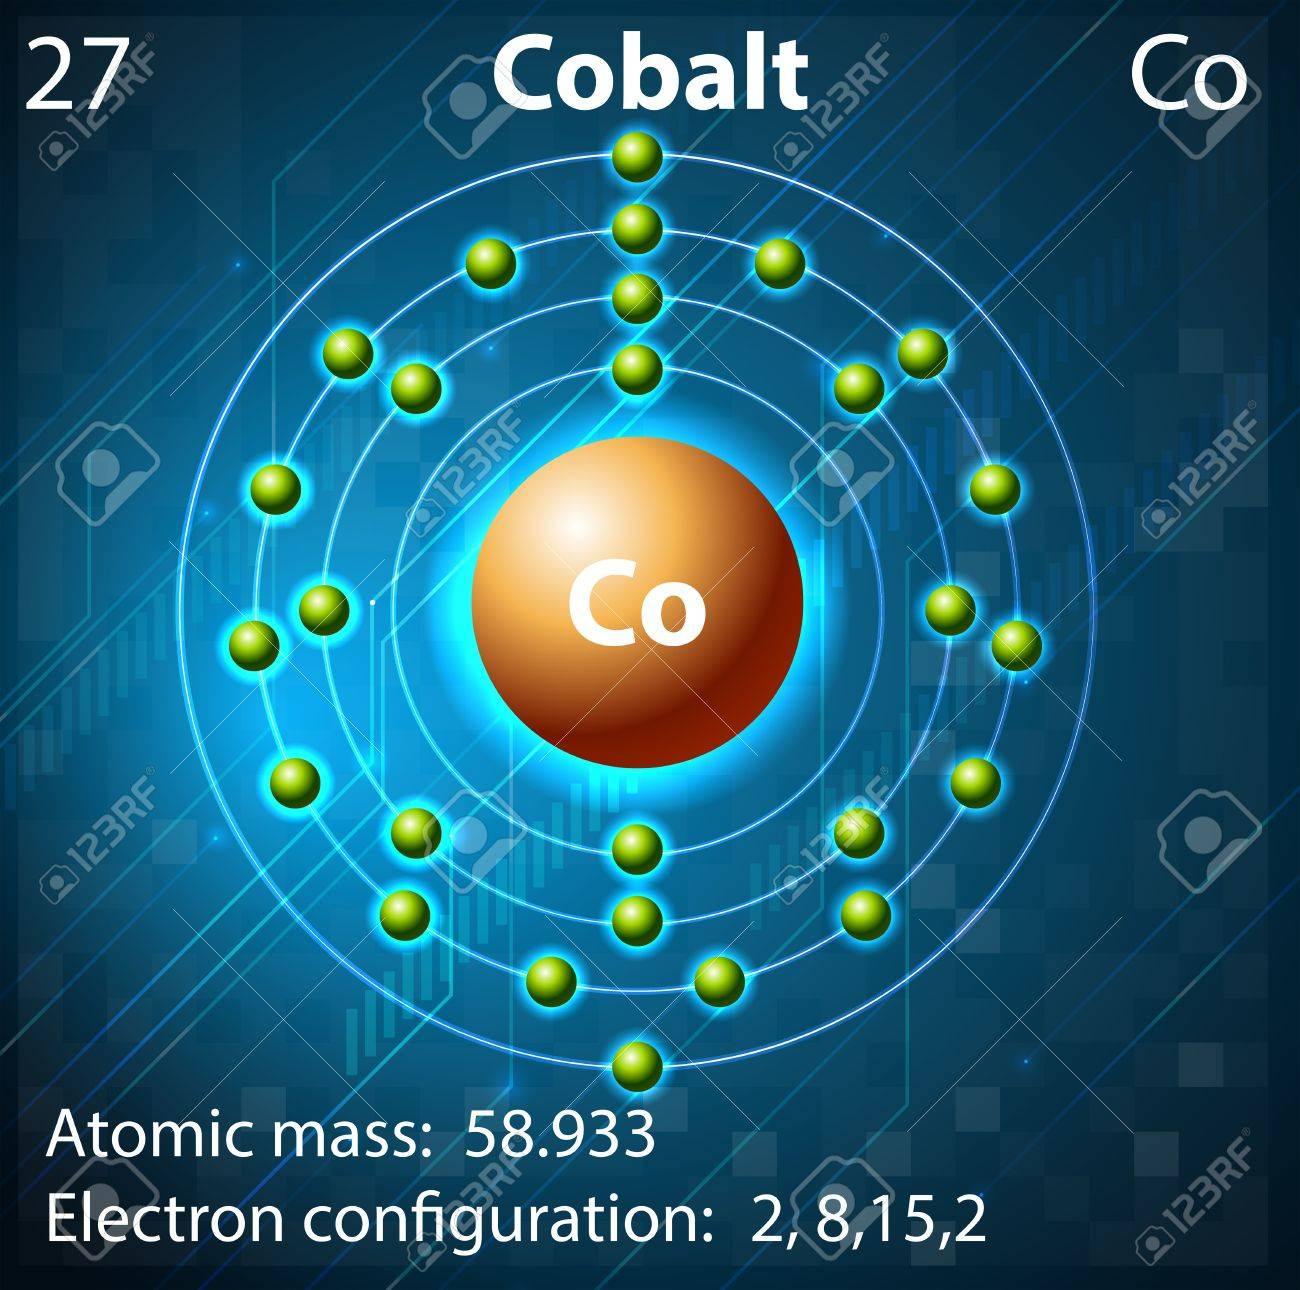 Illustration of the element Cobalt Stock Vector - 21832117